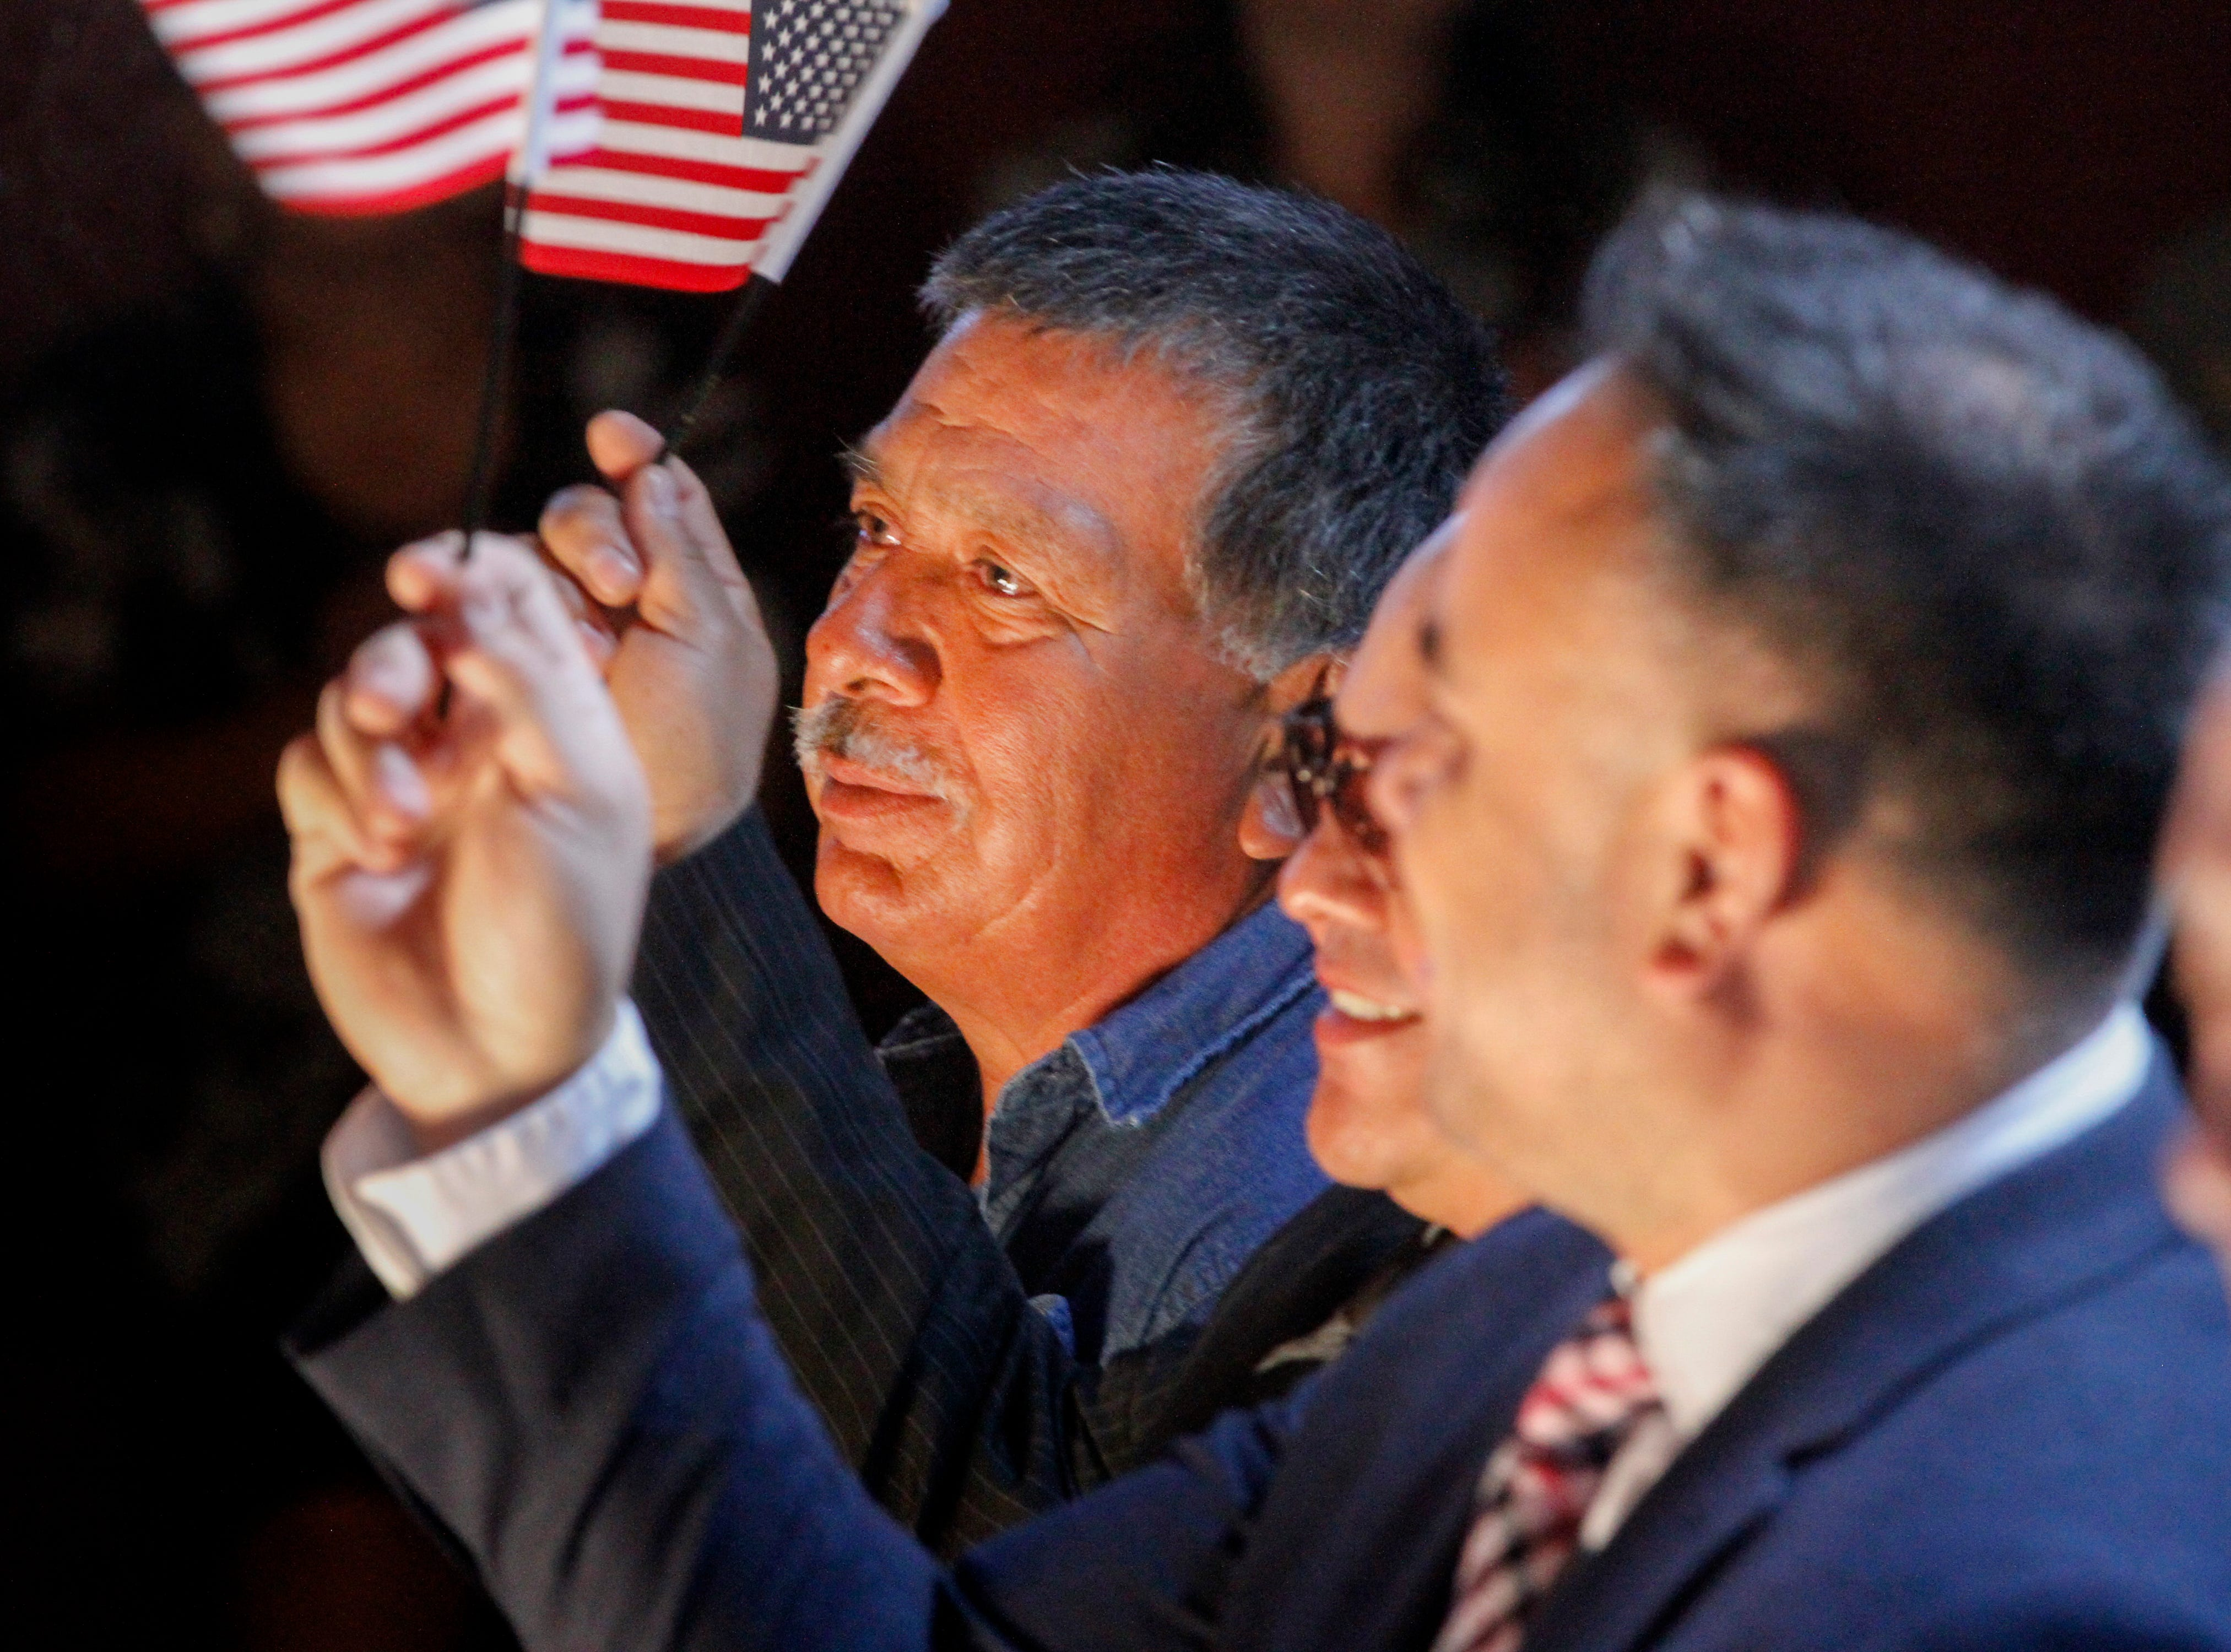 Jose Javier Juarez, left, Juan Luis Núñez and Norman Enriquez wave the U.S. Flags after taking the oath of citizenship, Friday, Sept. 28, 2018 during a naturalization ceremony at the Aztec Ruins National Monument.